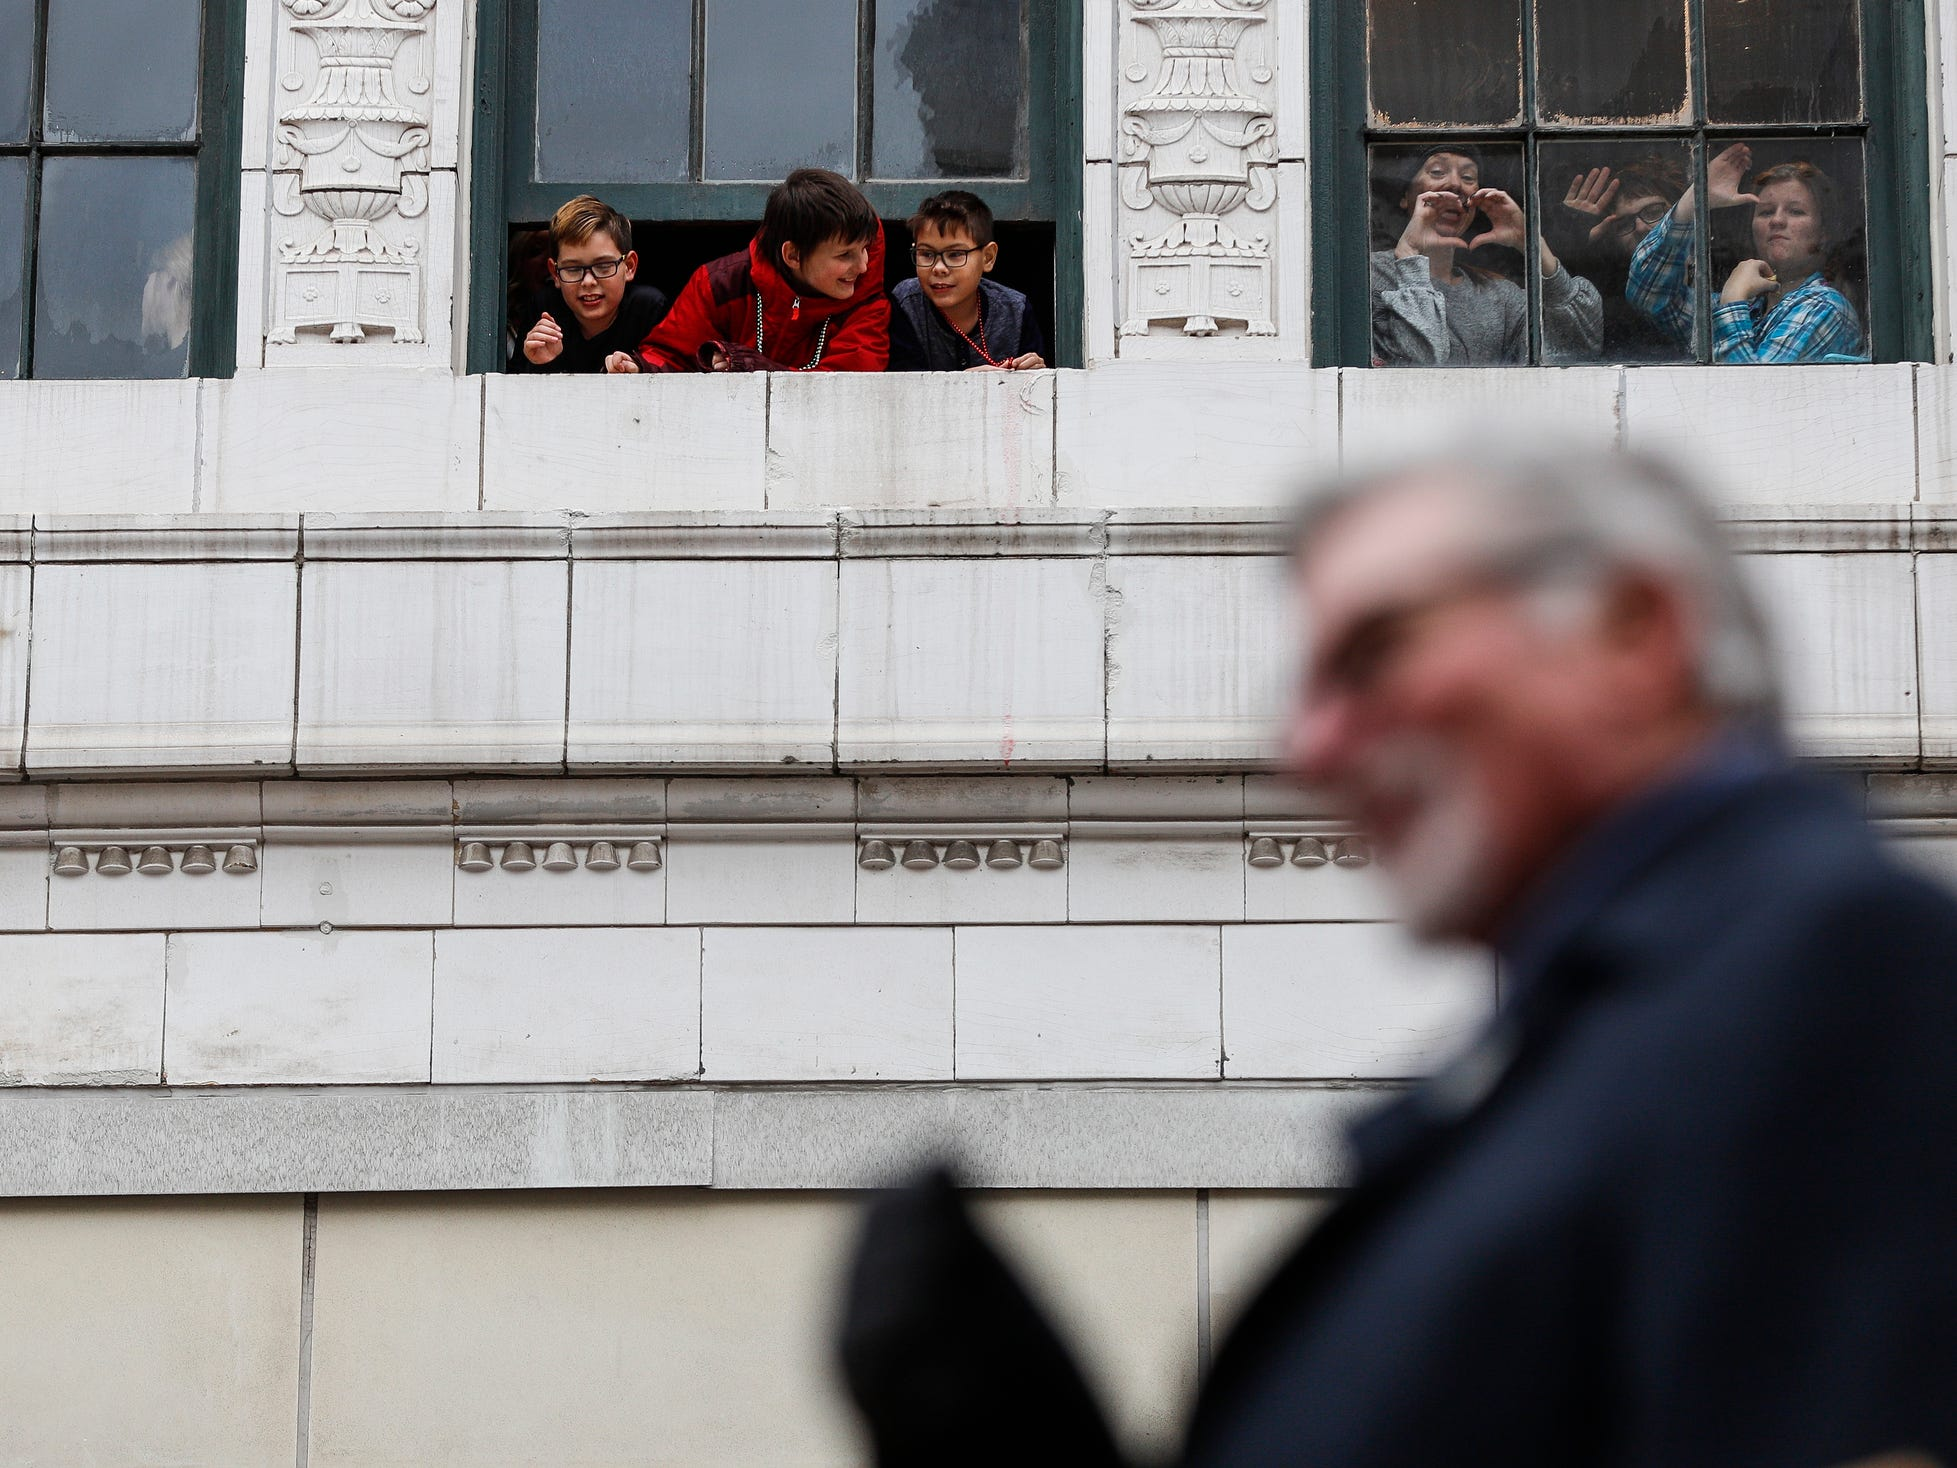 Spectators watch the parade as former Detroit Tigers pitcher Jack Morris goes by on Woodward Avenue during the 92nd America's Thanksgiving Day Parade in Detroit, Thursday, Nov. 22, 2018.